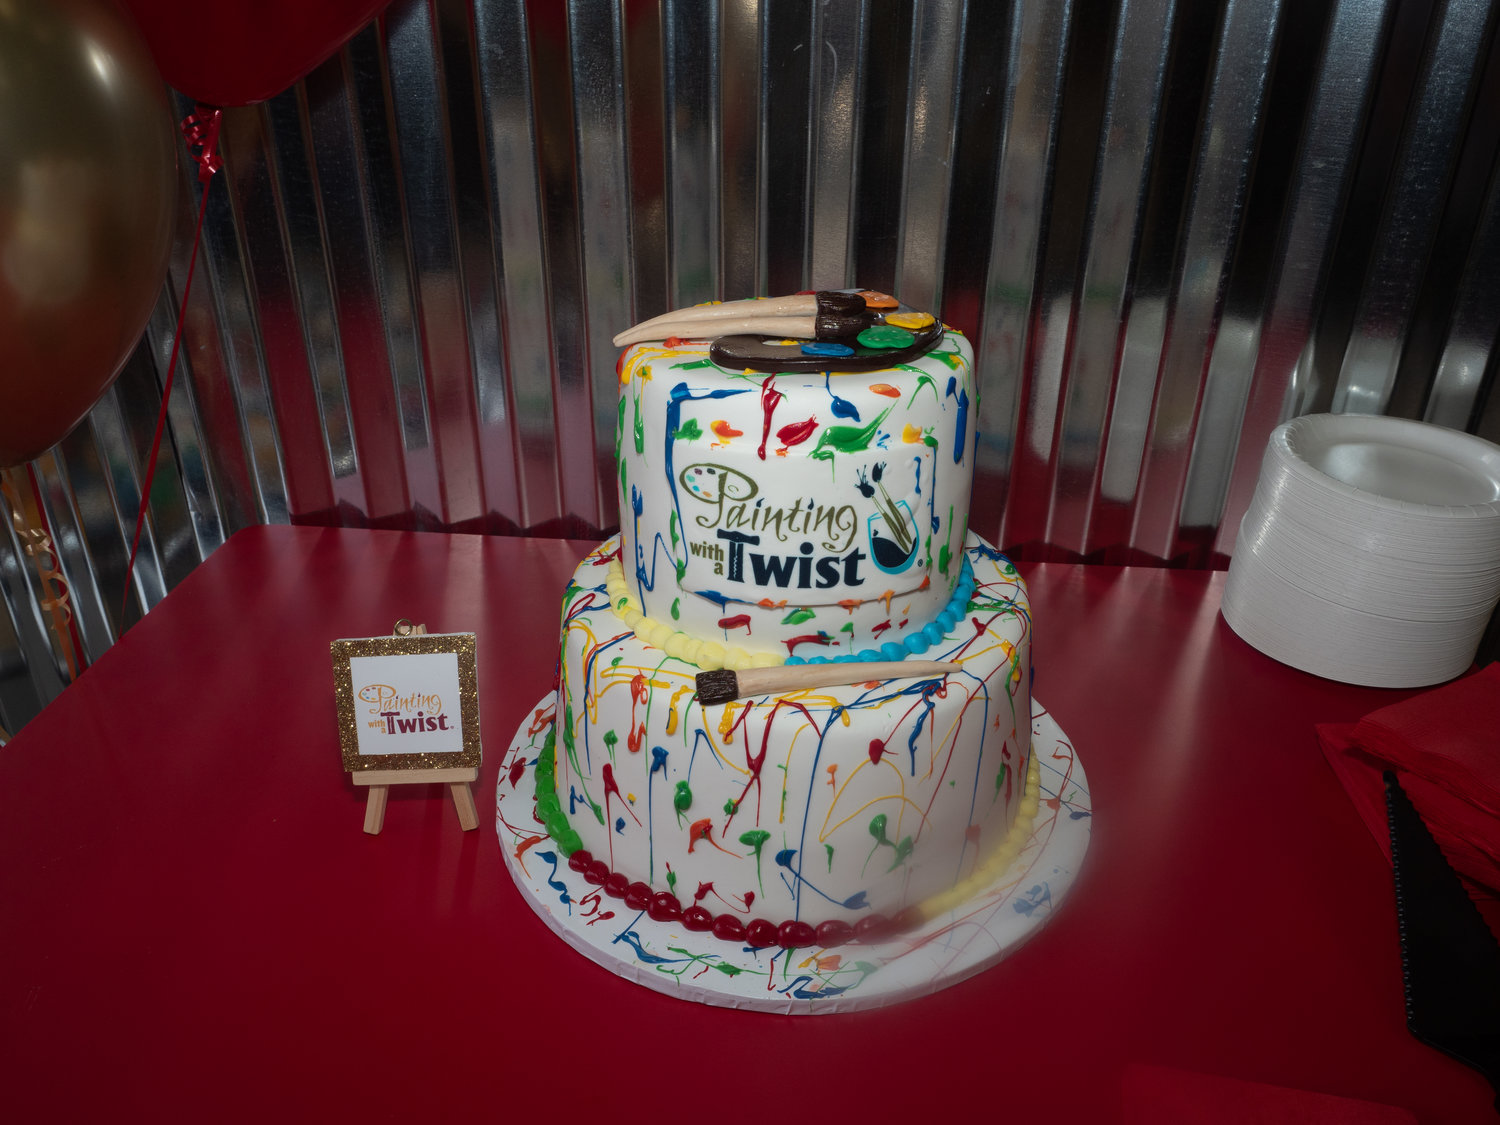 Guests celebrated with wine and a colorful painting-themed cake.